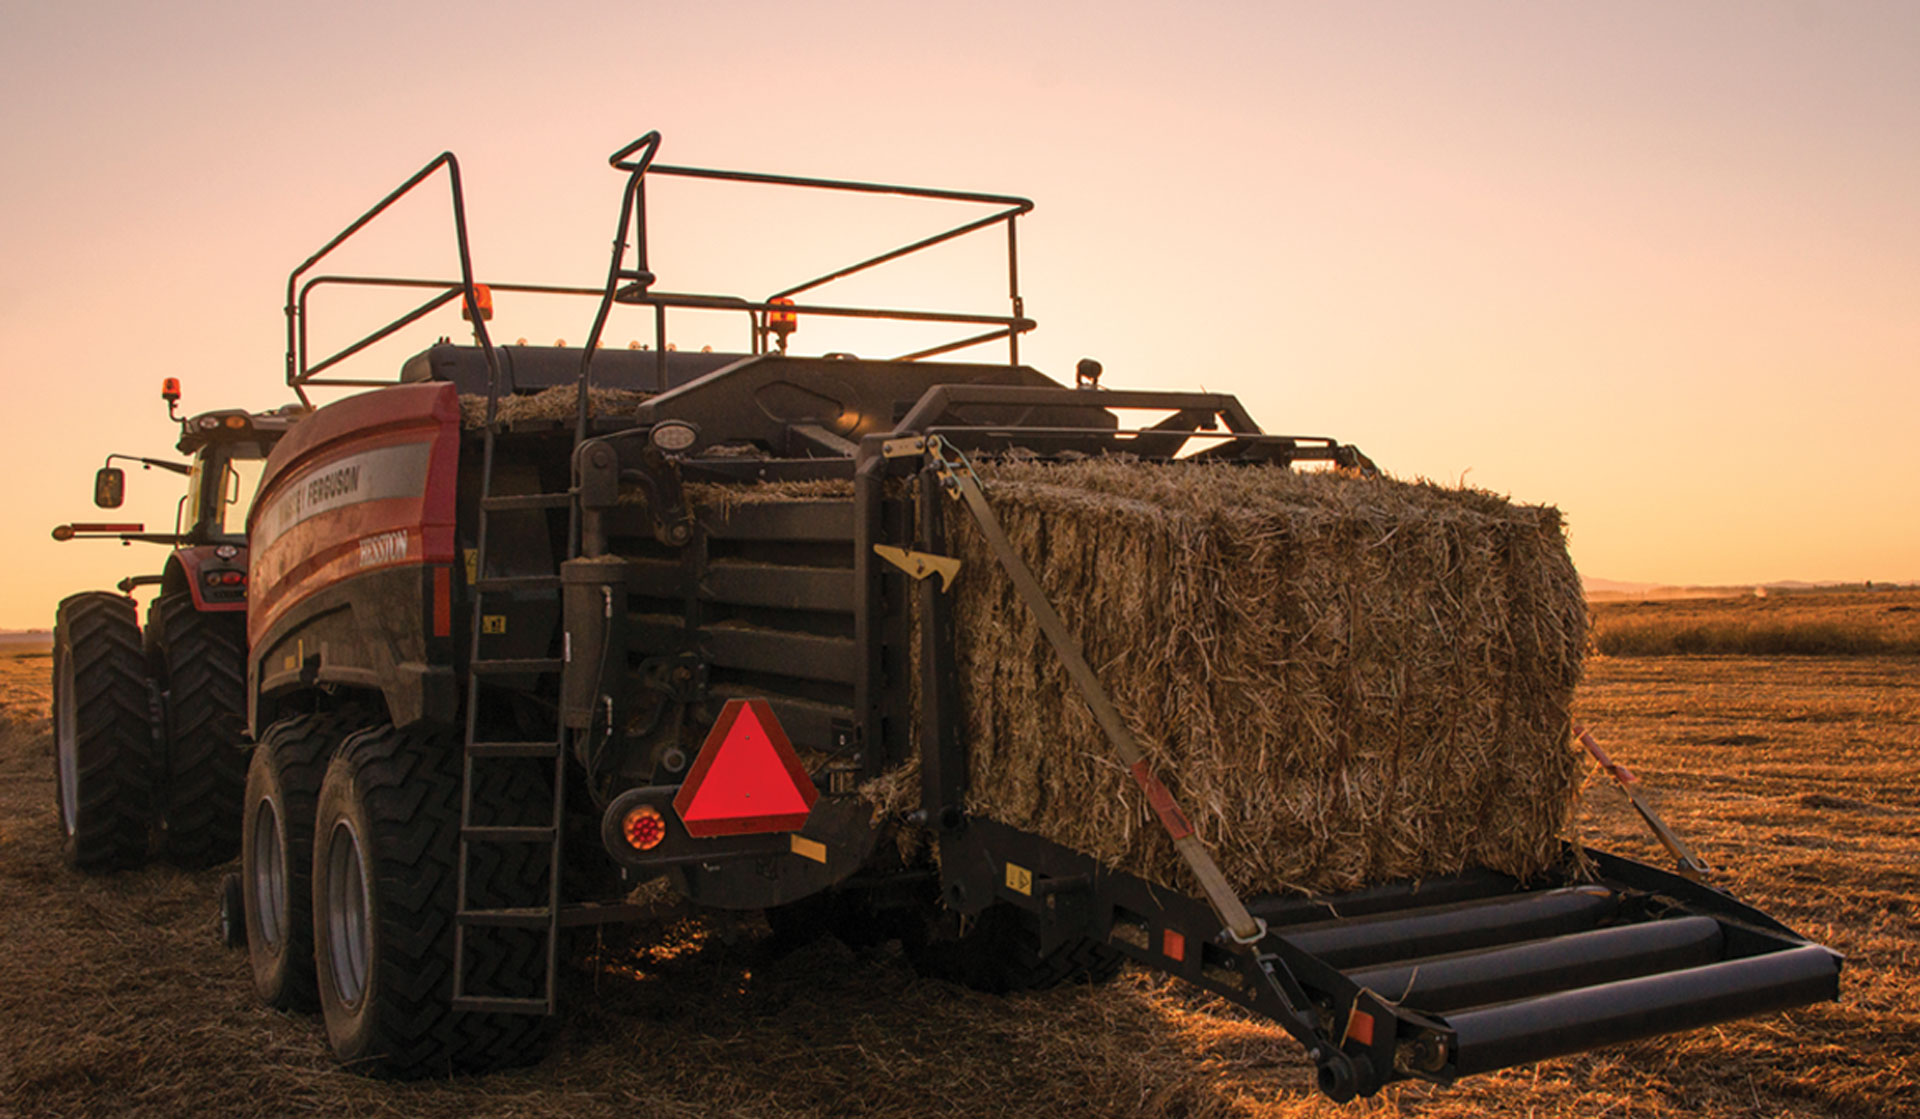 A Massey Ferguson baler in action.